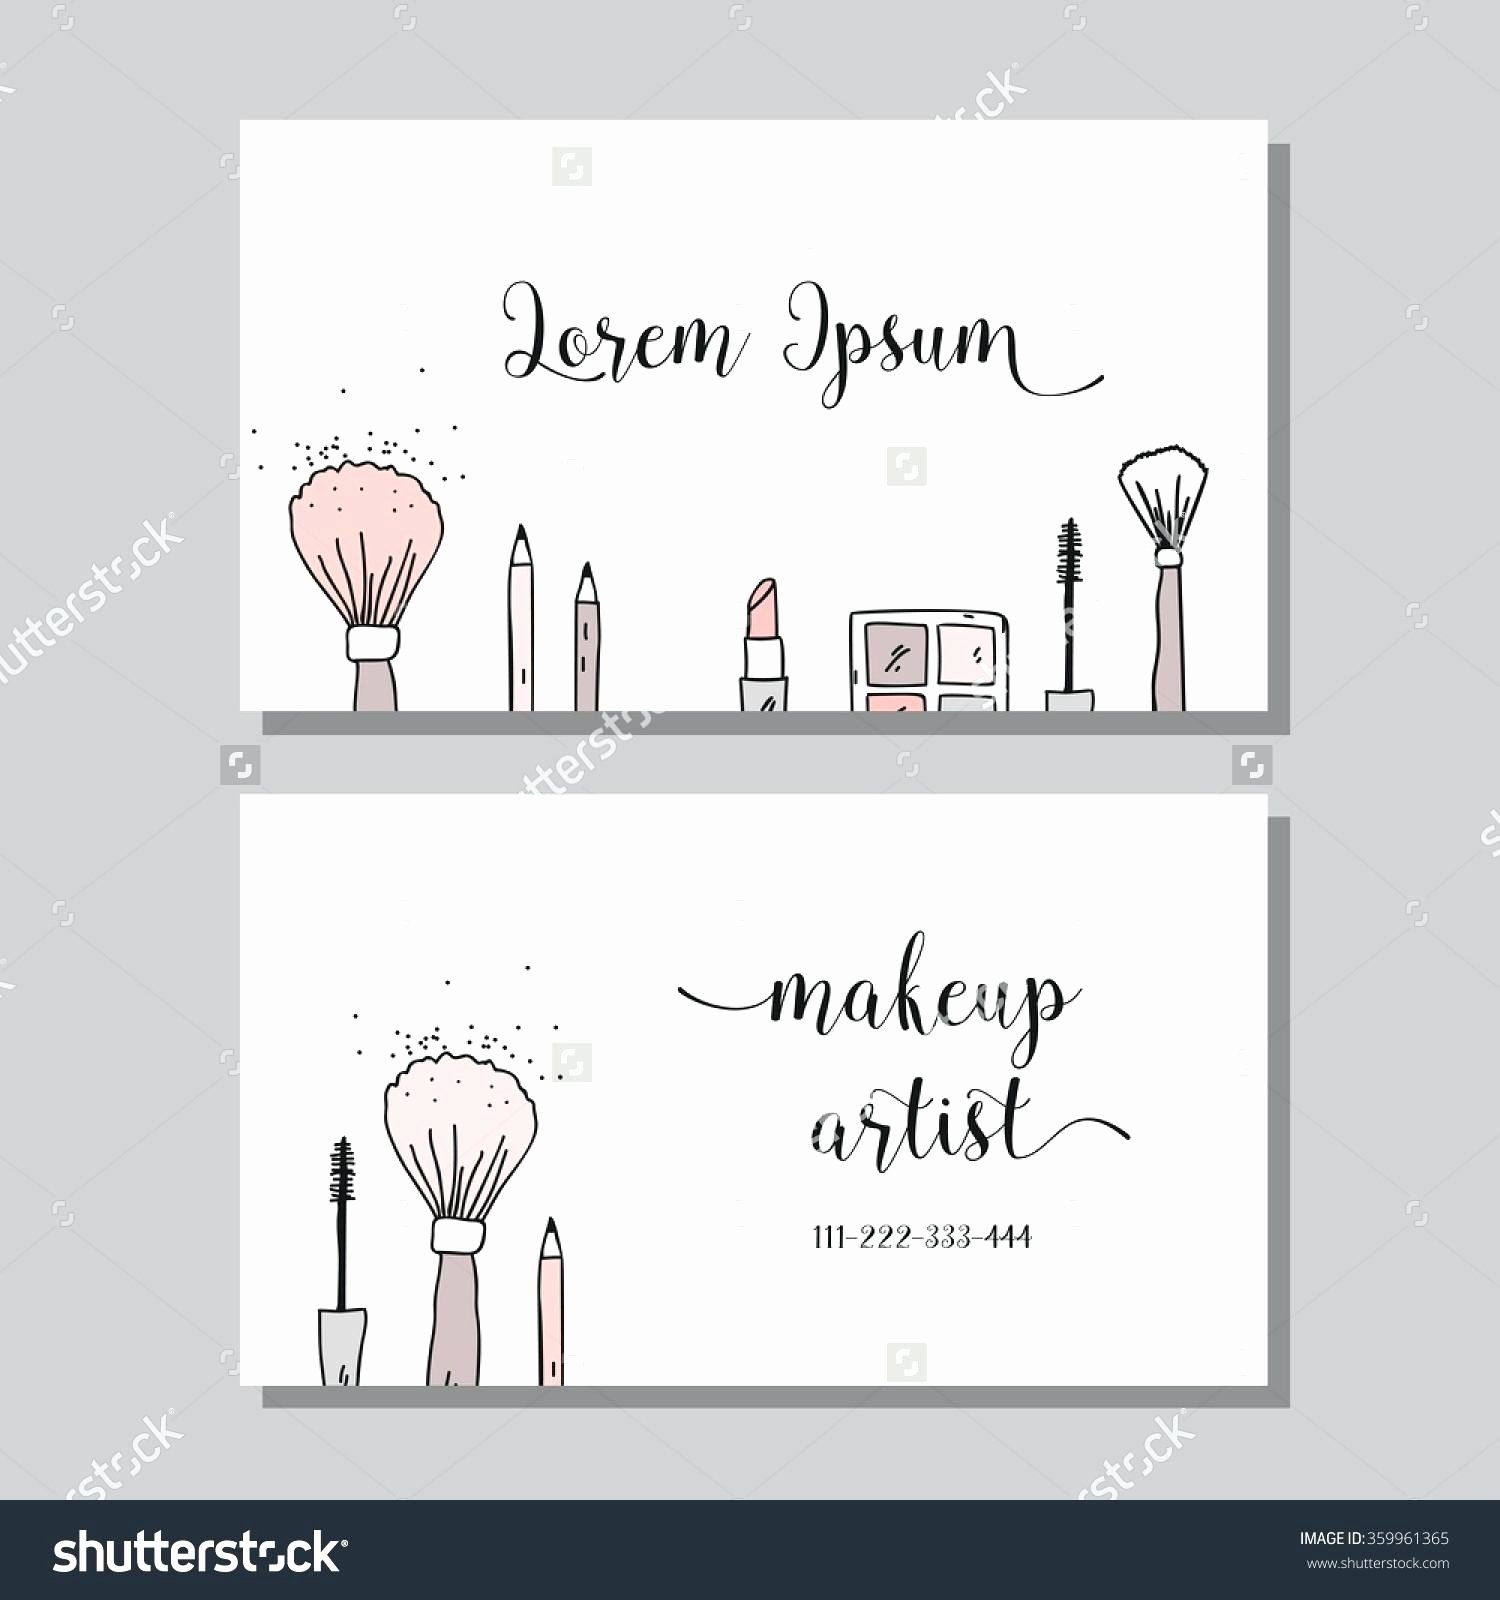 Small Business Subcontracting Plan Template Fresh Valid Makeup Artist Business Cards Templates Free